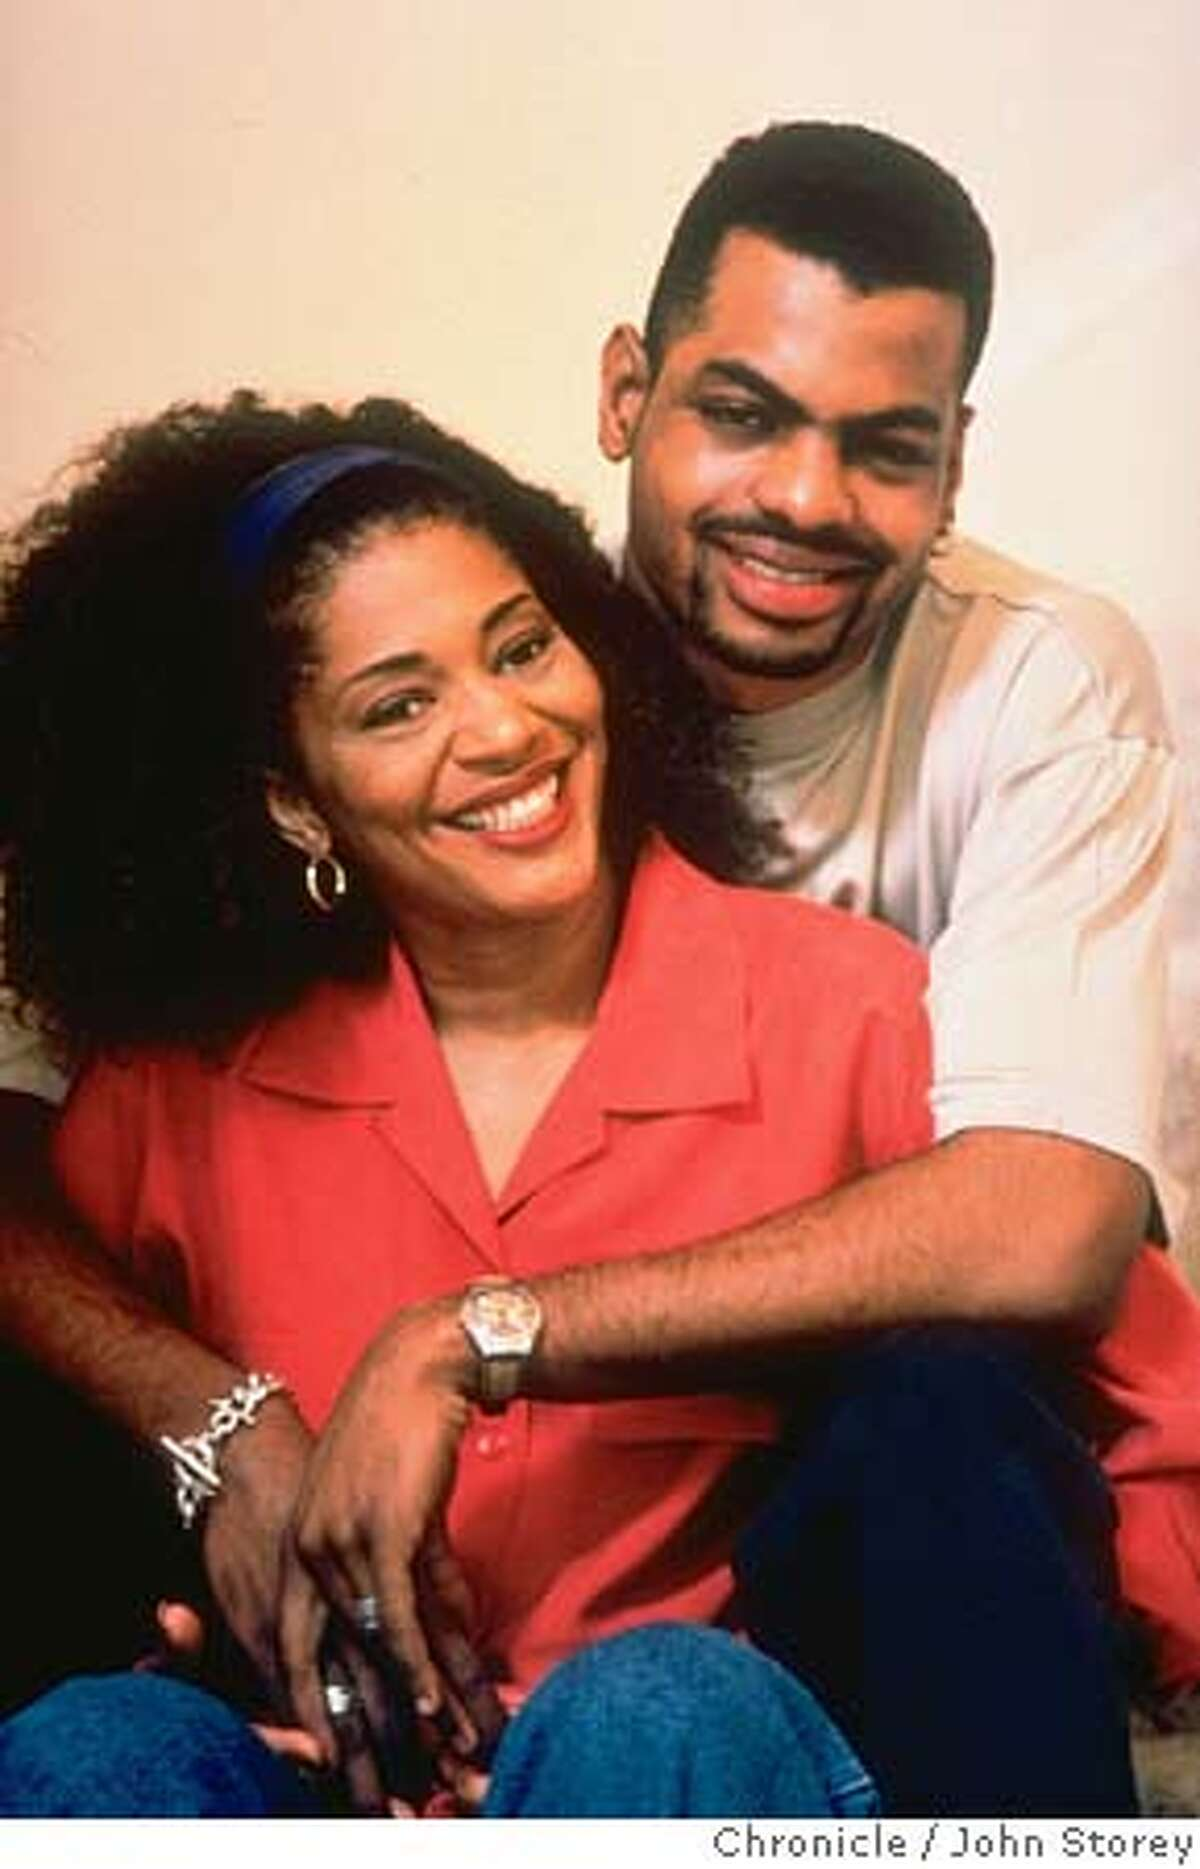 Caption for M&R story 6/26/05: Author Terry McMillan and husband Jonathan Plummer in happier times. Original caption from 1996: Author Terry McMillan, 44, cuddling with her 21-yr-old live-in lover, college student Jonatahan Plummer. (Photo by John Storey//Time Life Pictures/Getty Images)